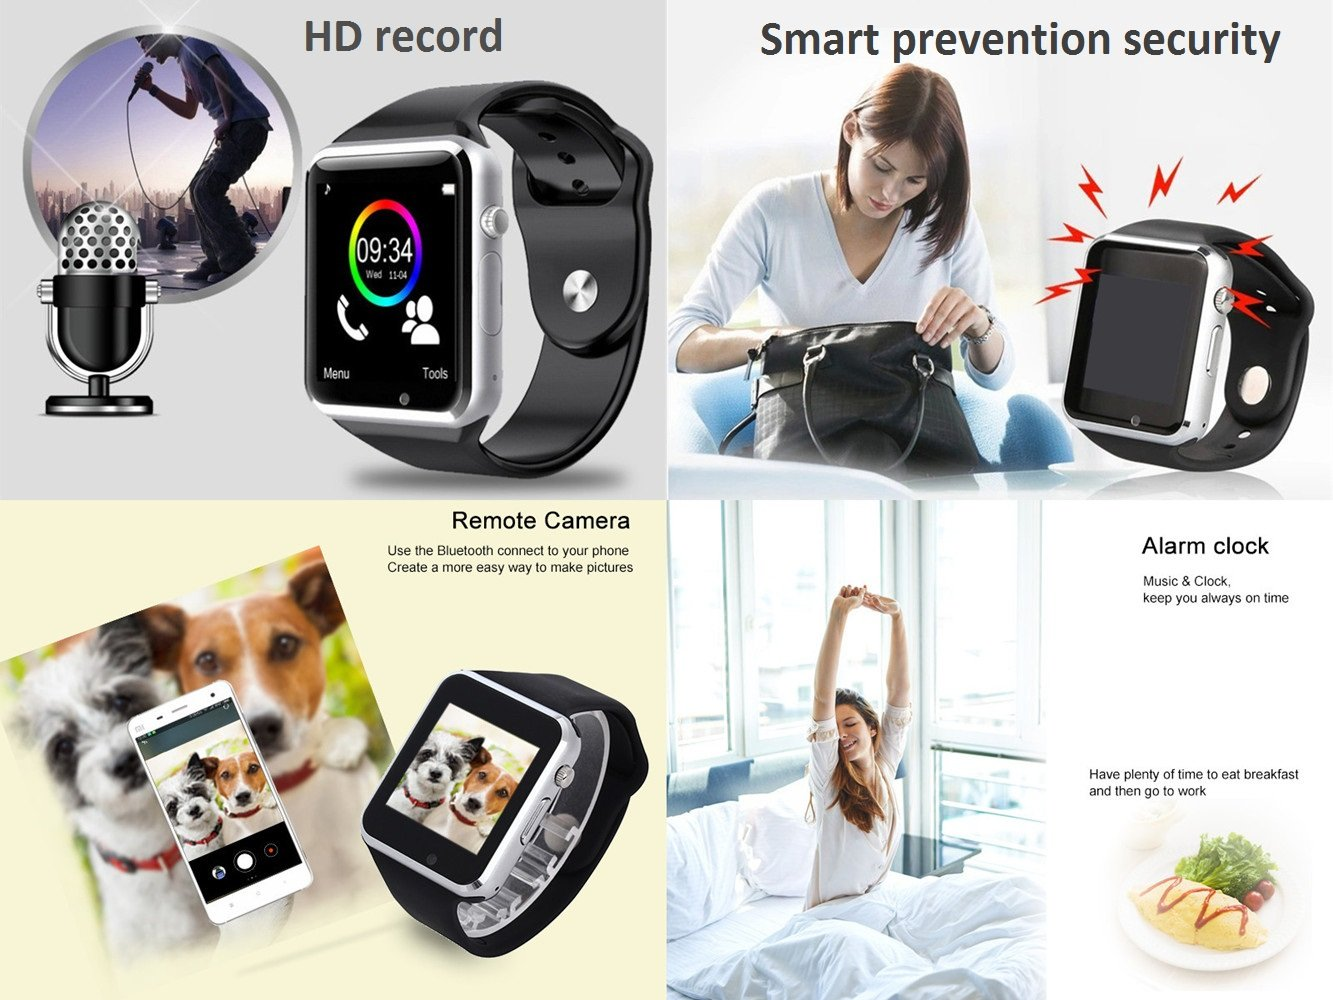 Smart Watch - 321OU Touch Screen Bluetooth Smart Wrist Watch Smartwatch Phone Fitness Tracker with SIM SD Card Slot Camera Pedometer for iPhone iOS Samsung LG Android for Women Men Kids (Black) by 321OU (Image #5)